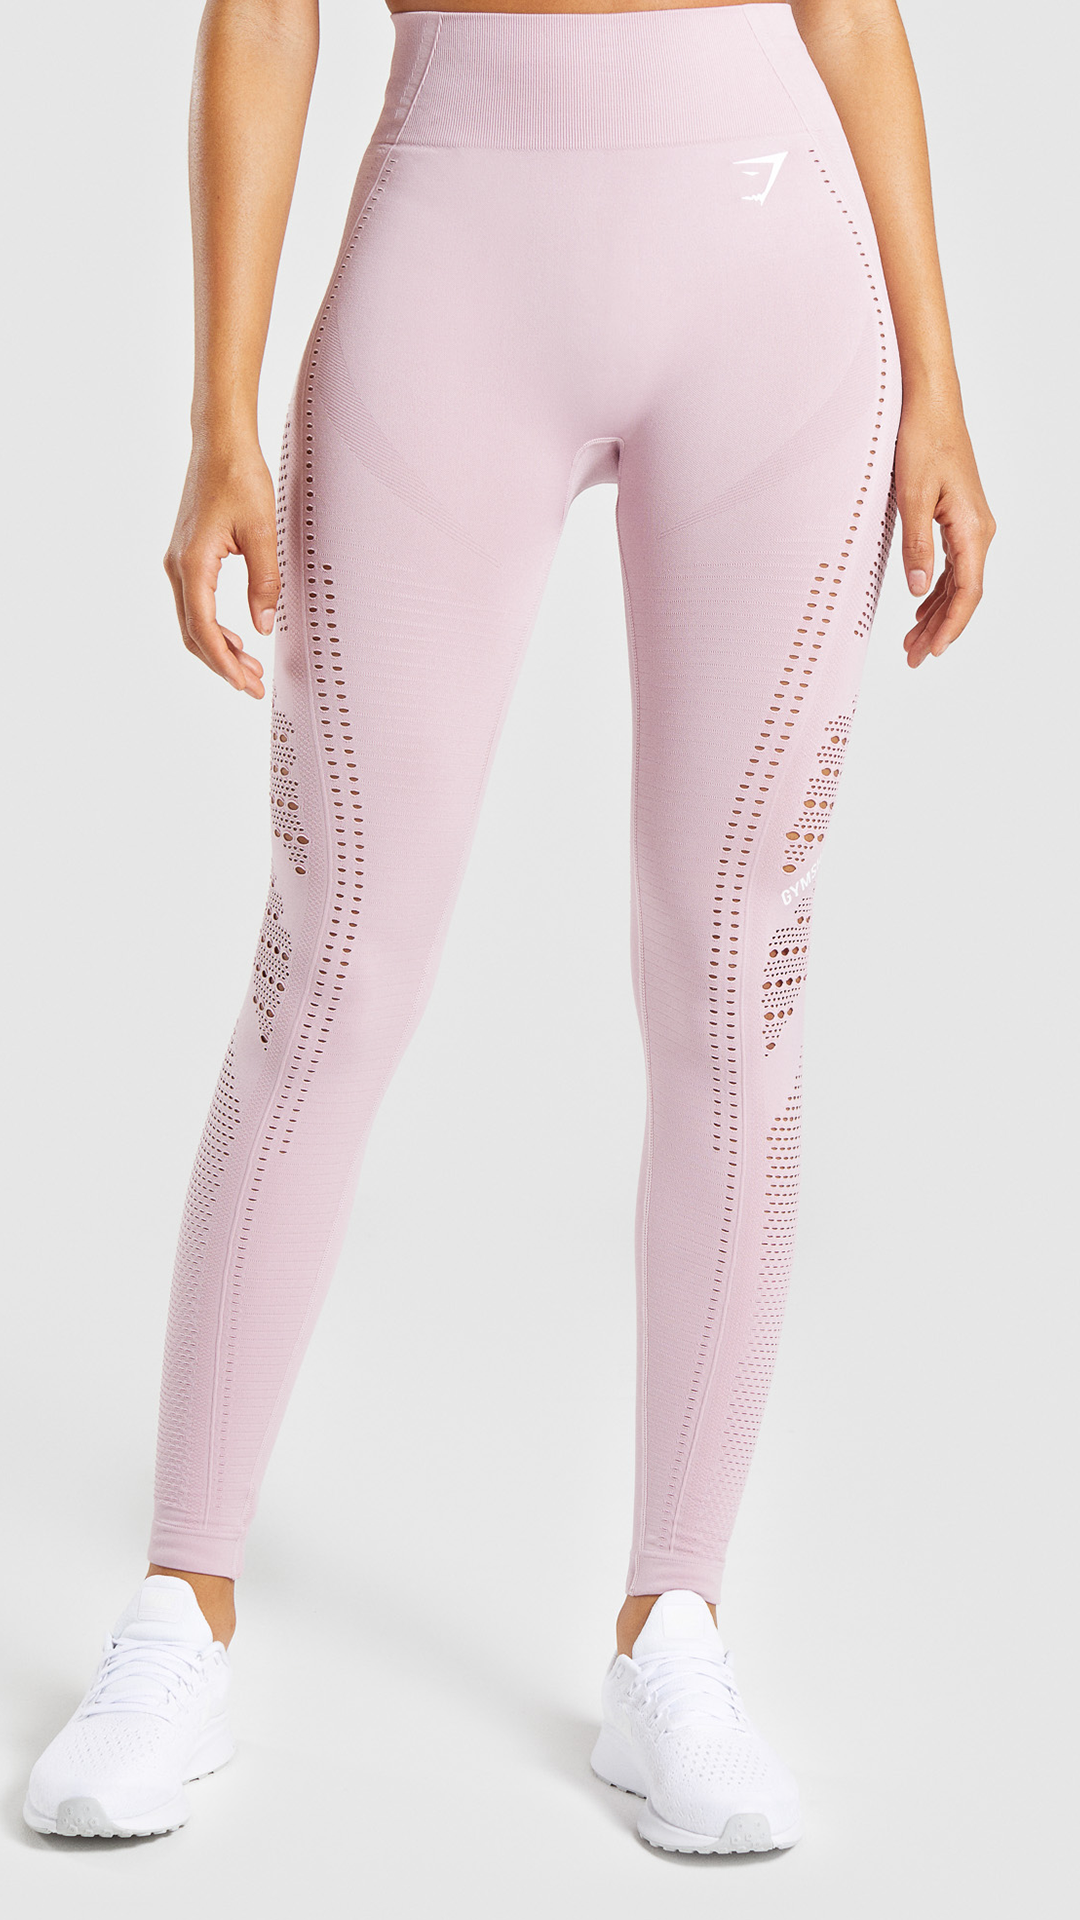 3fcecb73af5f3 Gymshark Flawless Knit Tights - Washed Lavender in 2019 | Clothes ...